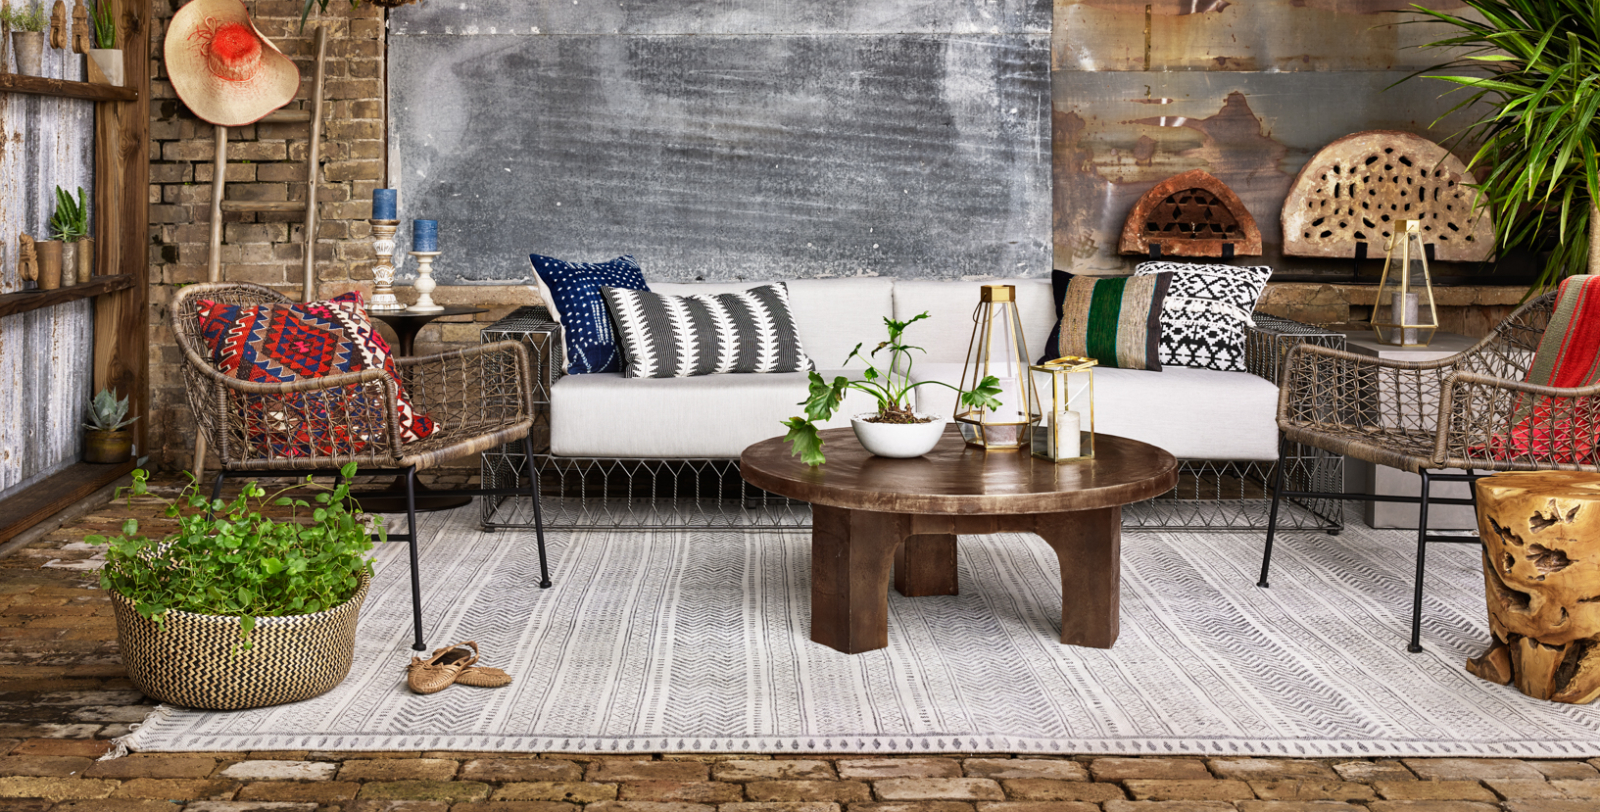 HOLIDAY FURNITURE SALE & Zin Home   Eclectic Modern \u0026 Industrial Style Furniture